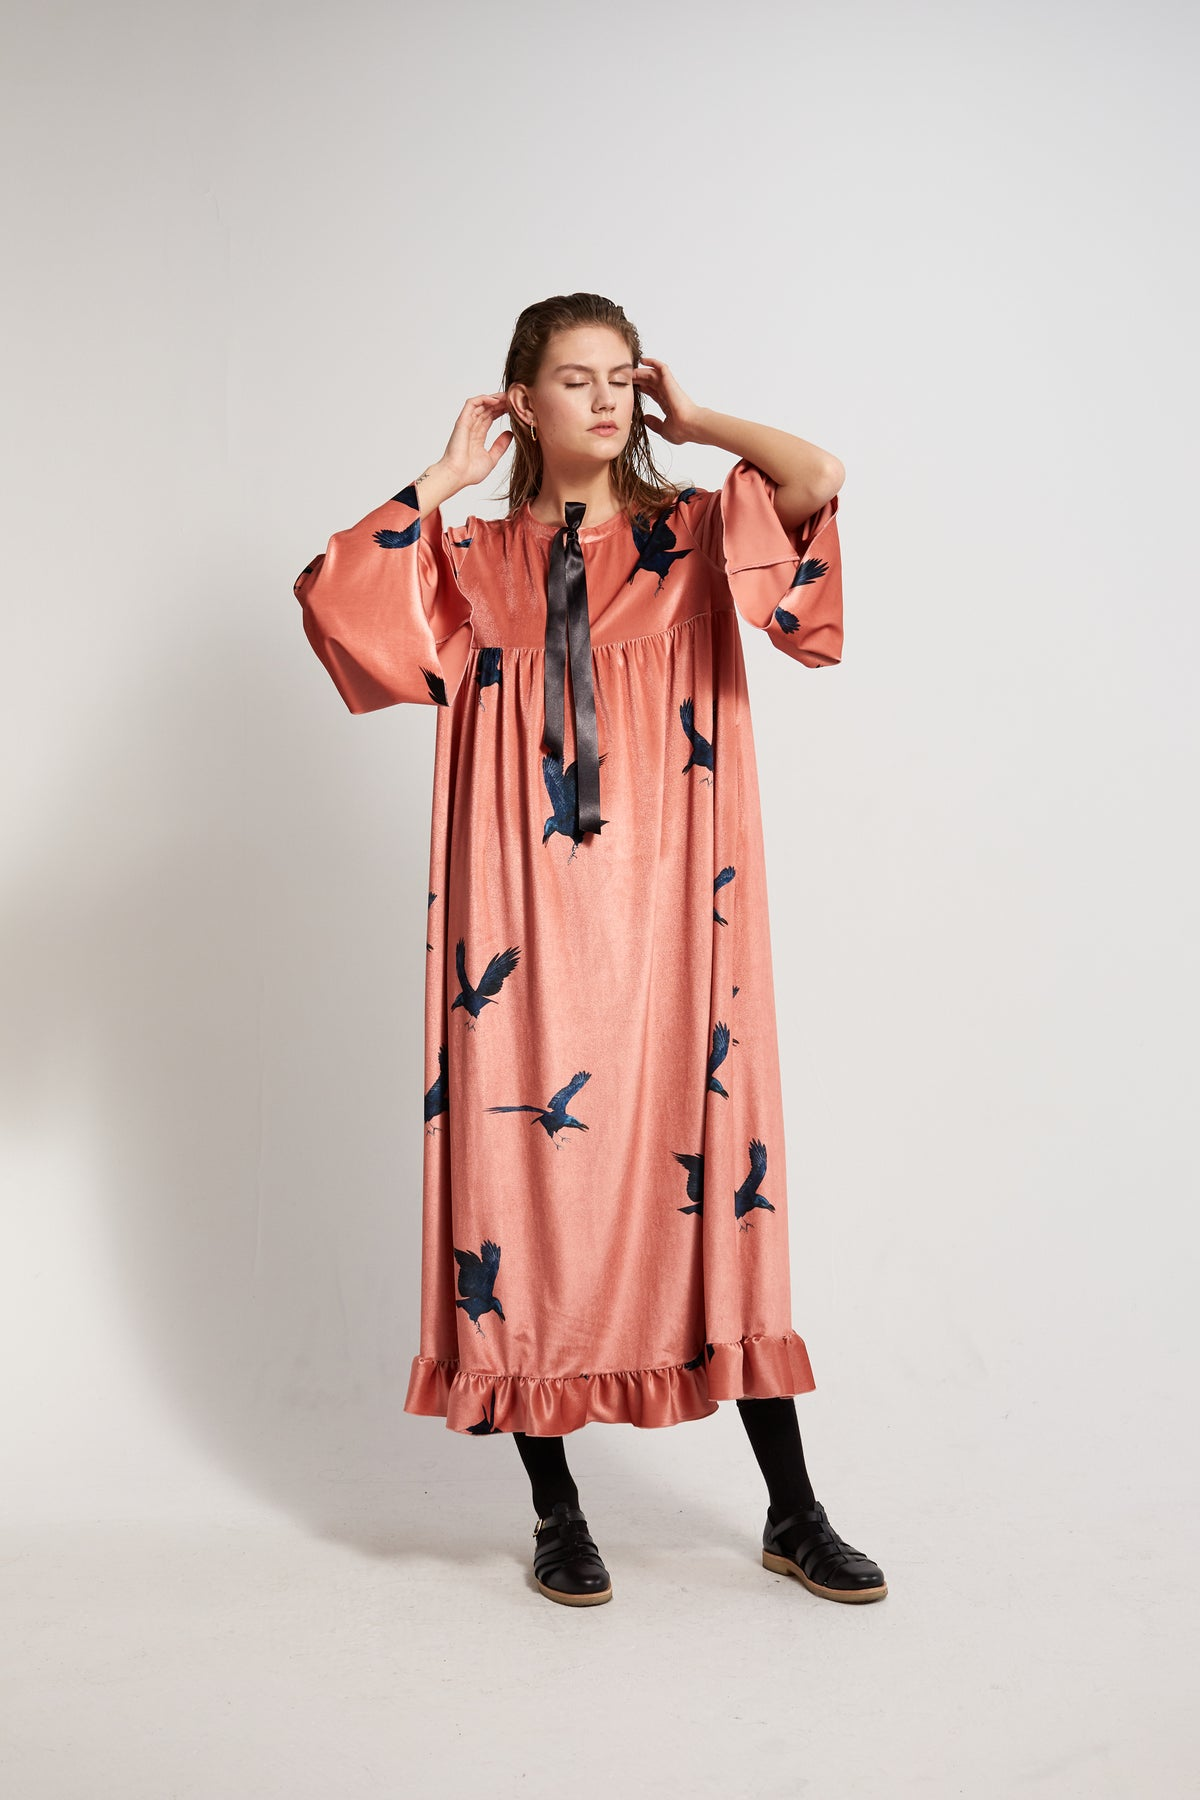 Sperone dress in Ravens printed velvet